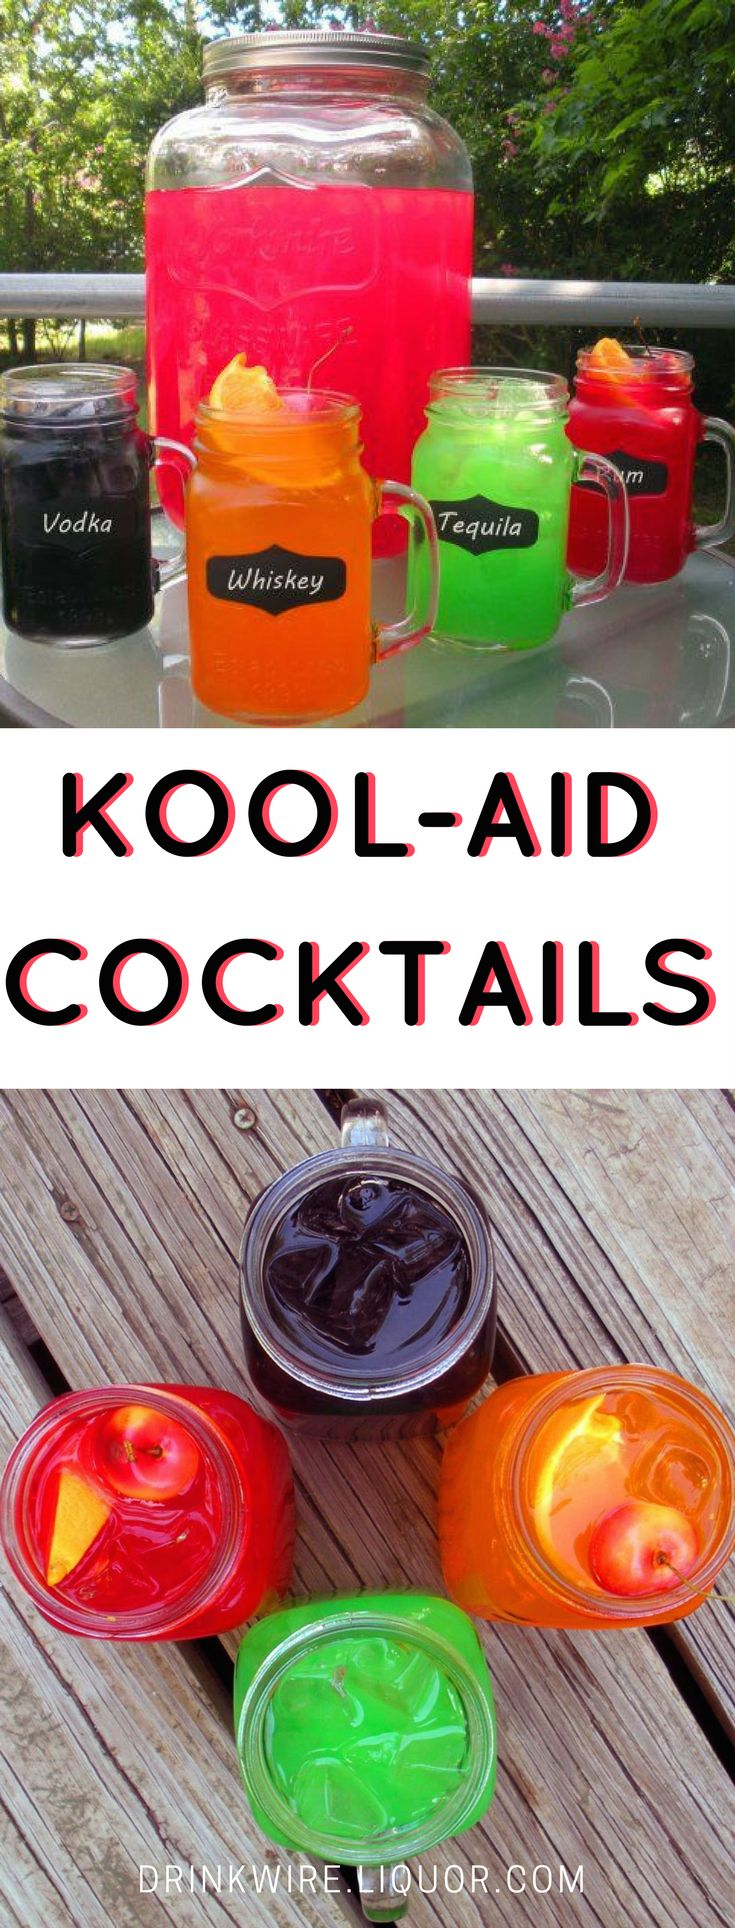 There's nothing like a childhood favorite transformed into a boozy adult treat! Kool-Aid pairs with all kinds of spirits to make the most refreshing alcoholic drinks! #cocktaildrinks